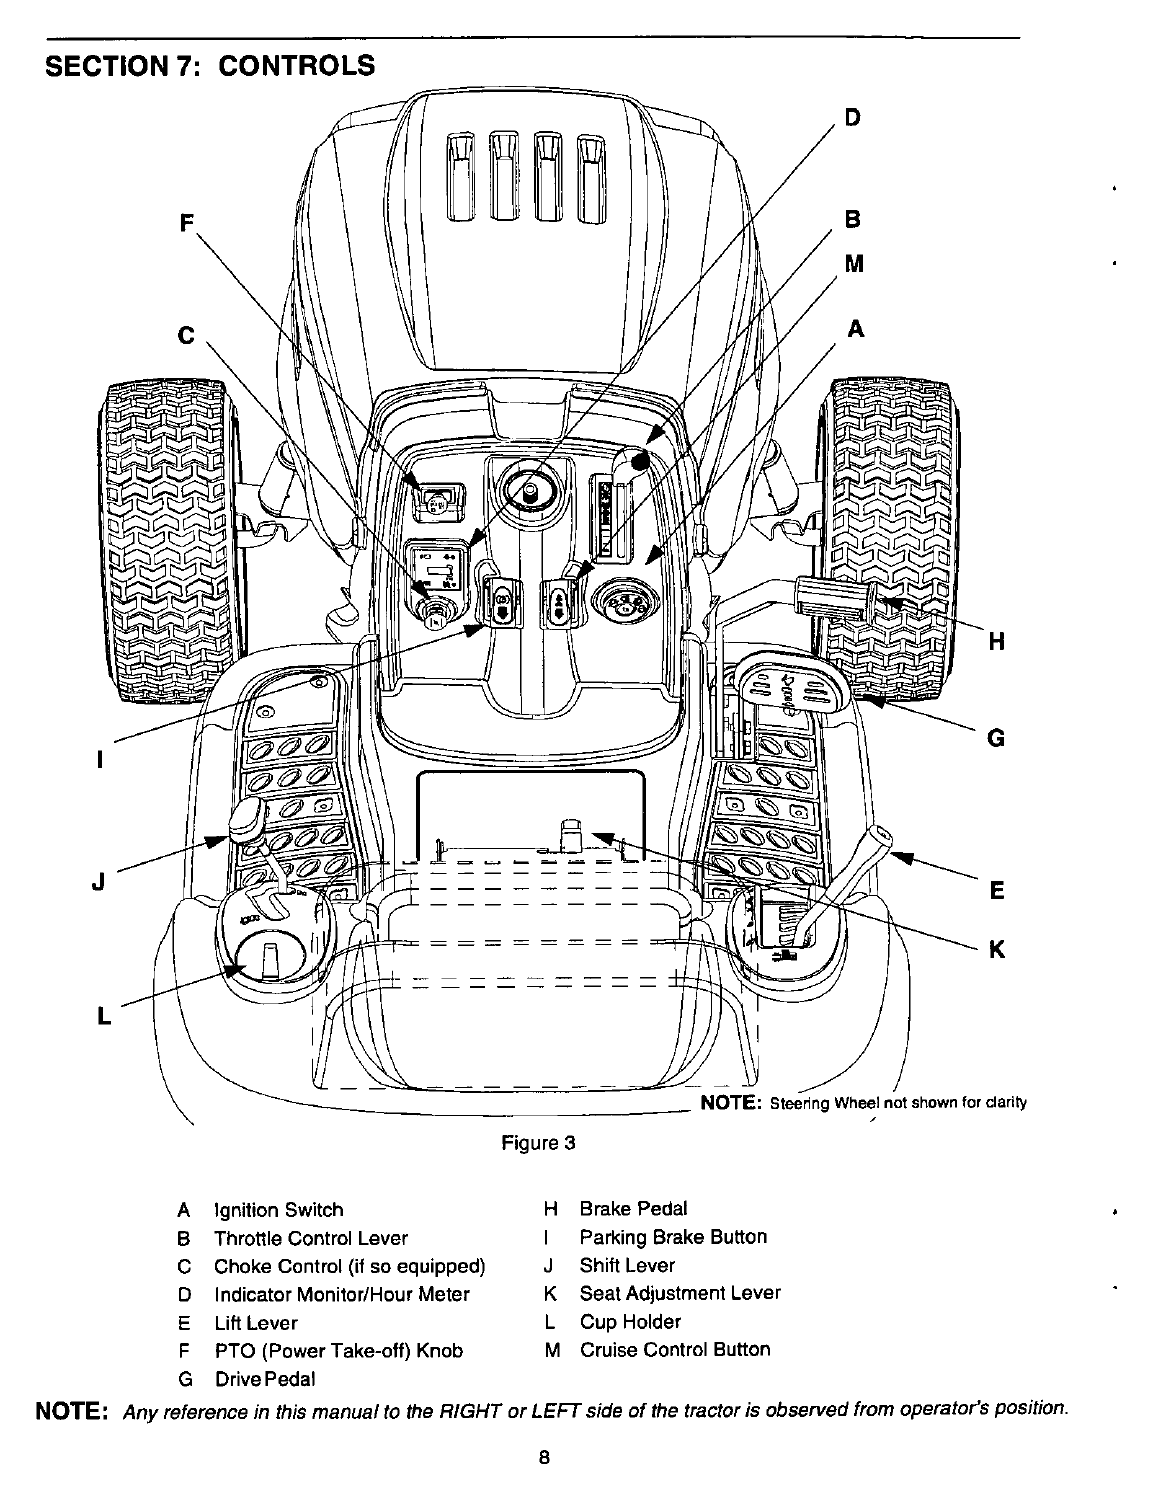 Page 8 of Cub Cadet Lawn Mower 1600 User Guide